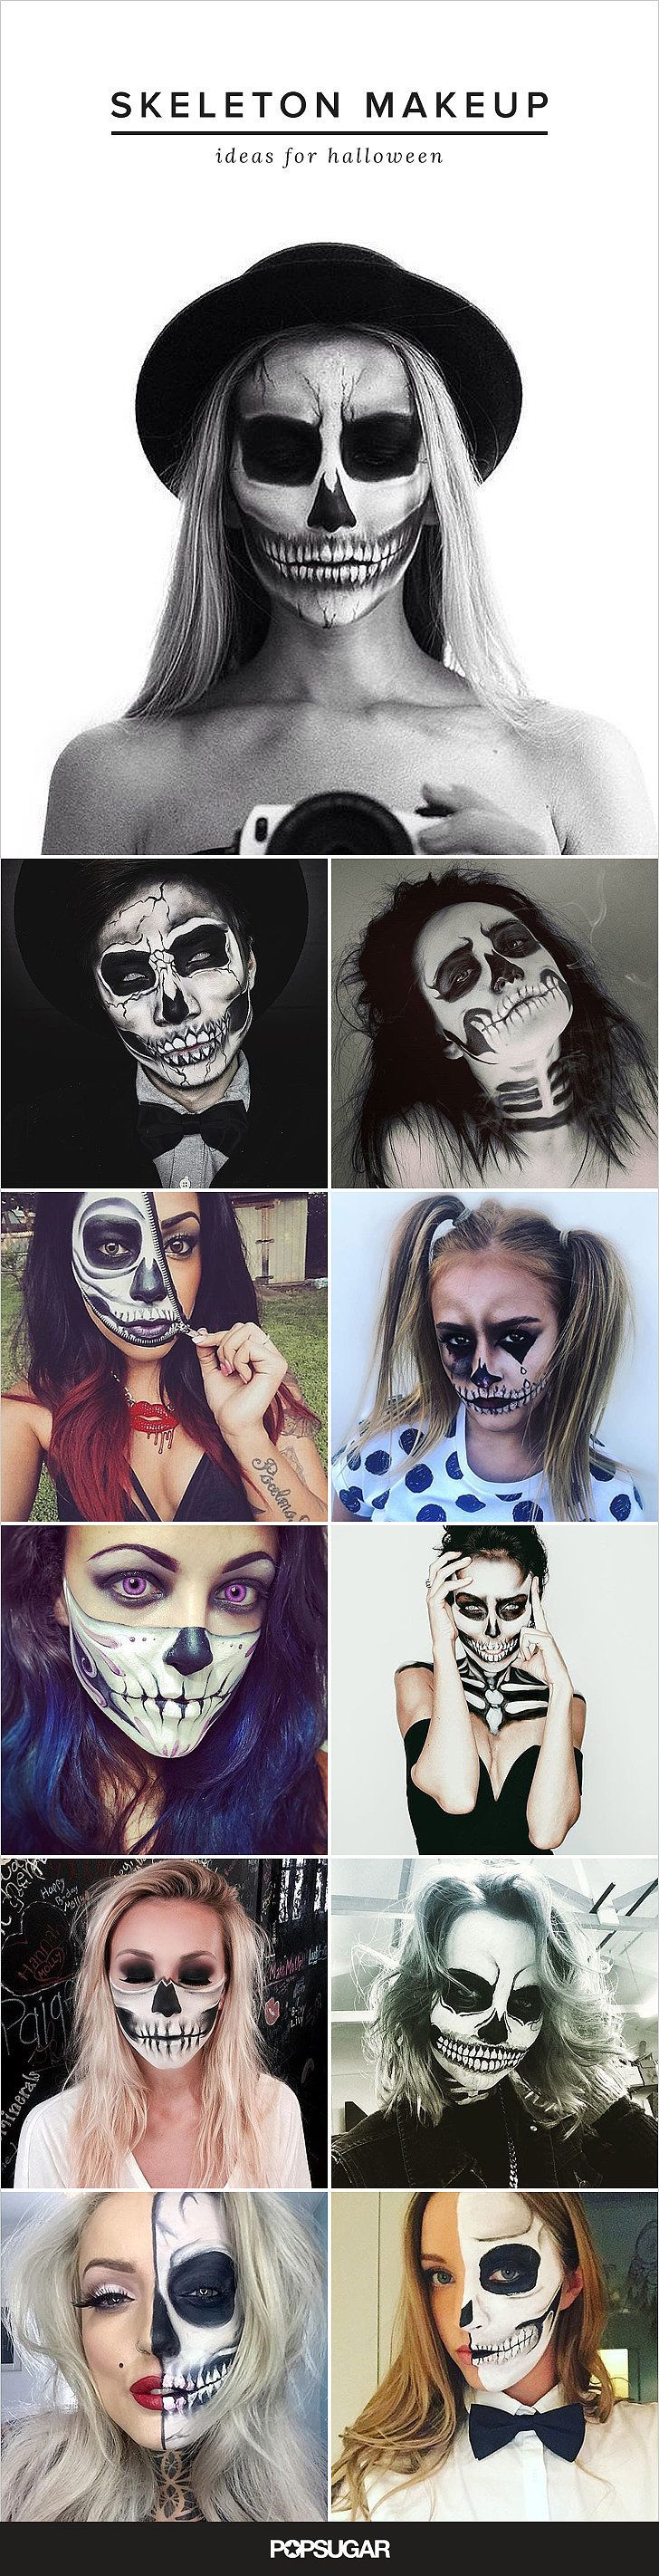 Skeleton makeup Halloween